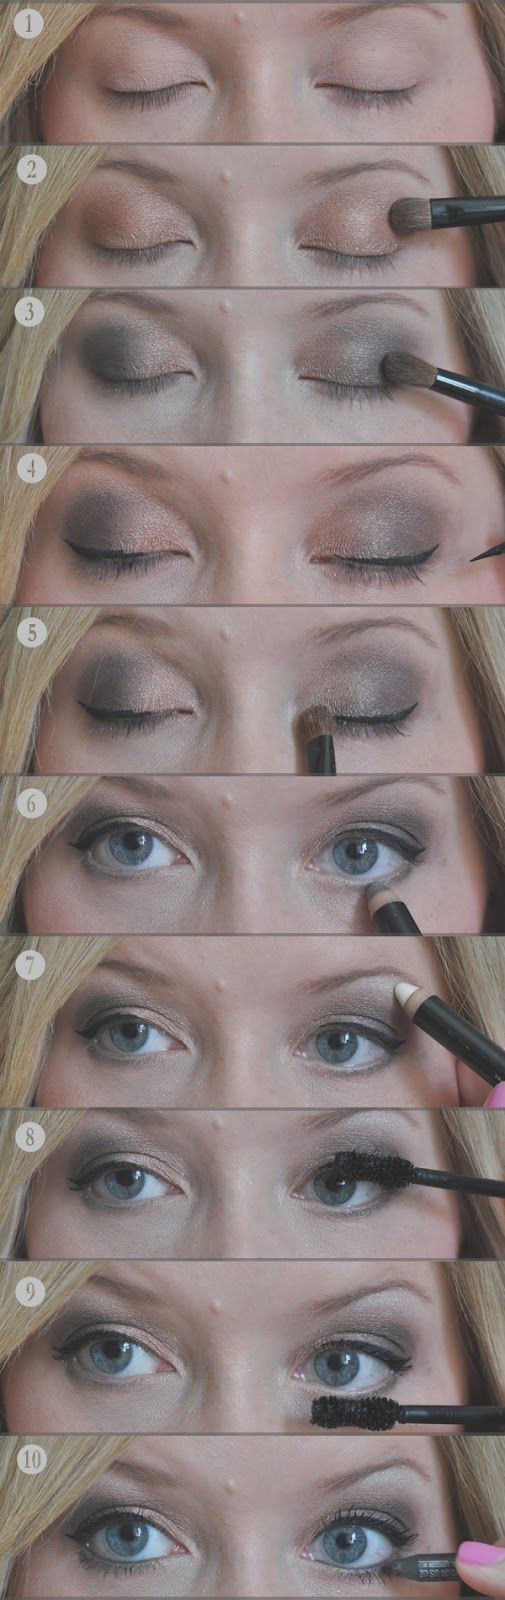 Easy smoky eye, courtesy of our friend Kate Bryan at The Small Things Blog.